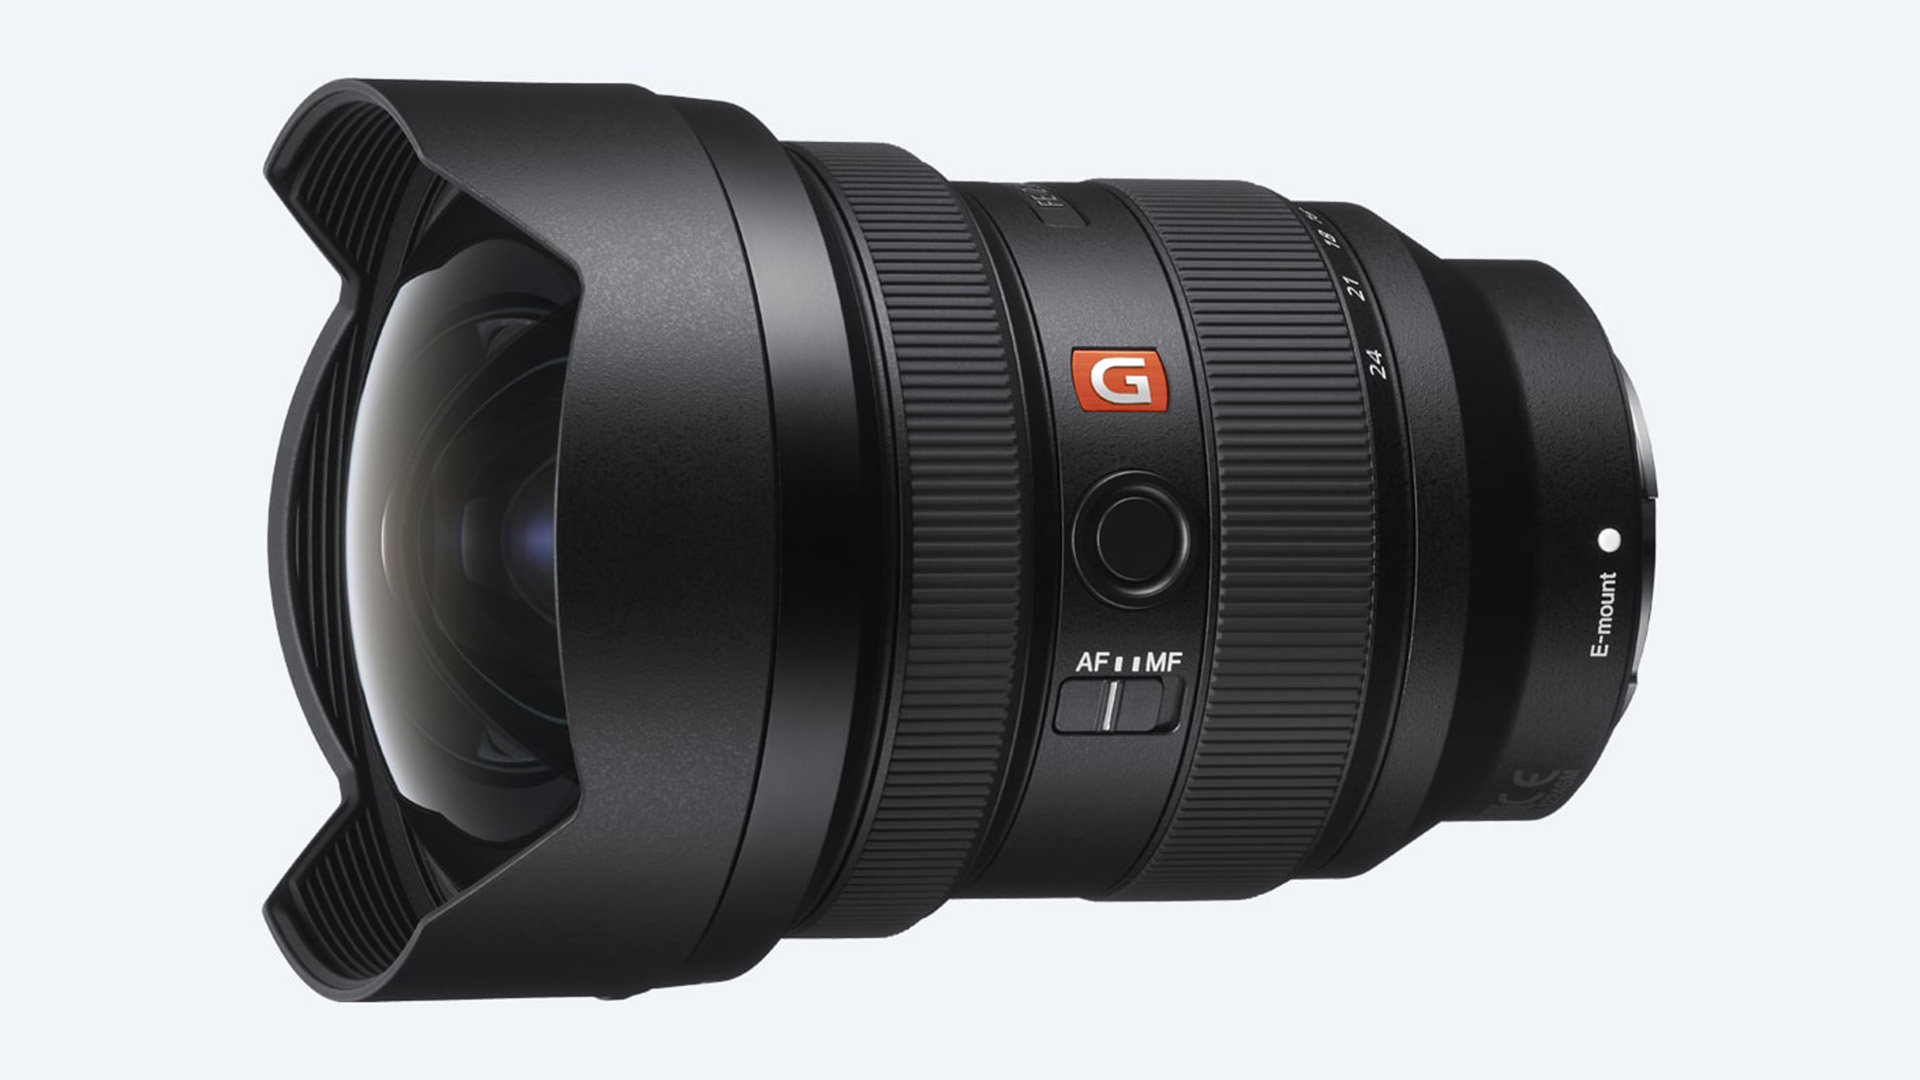 The Sony 12-24mm f/2.8 G Master lens. Image: Sony.